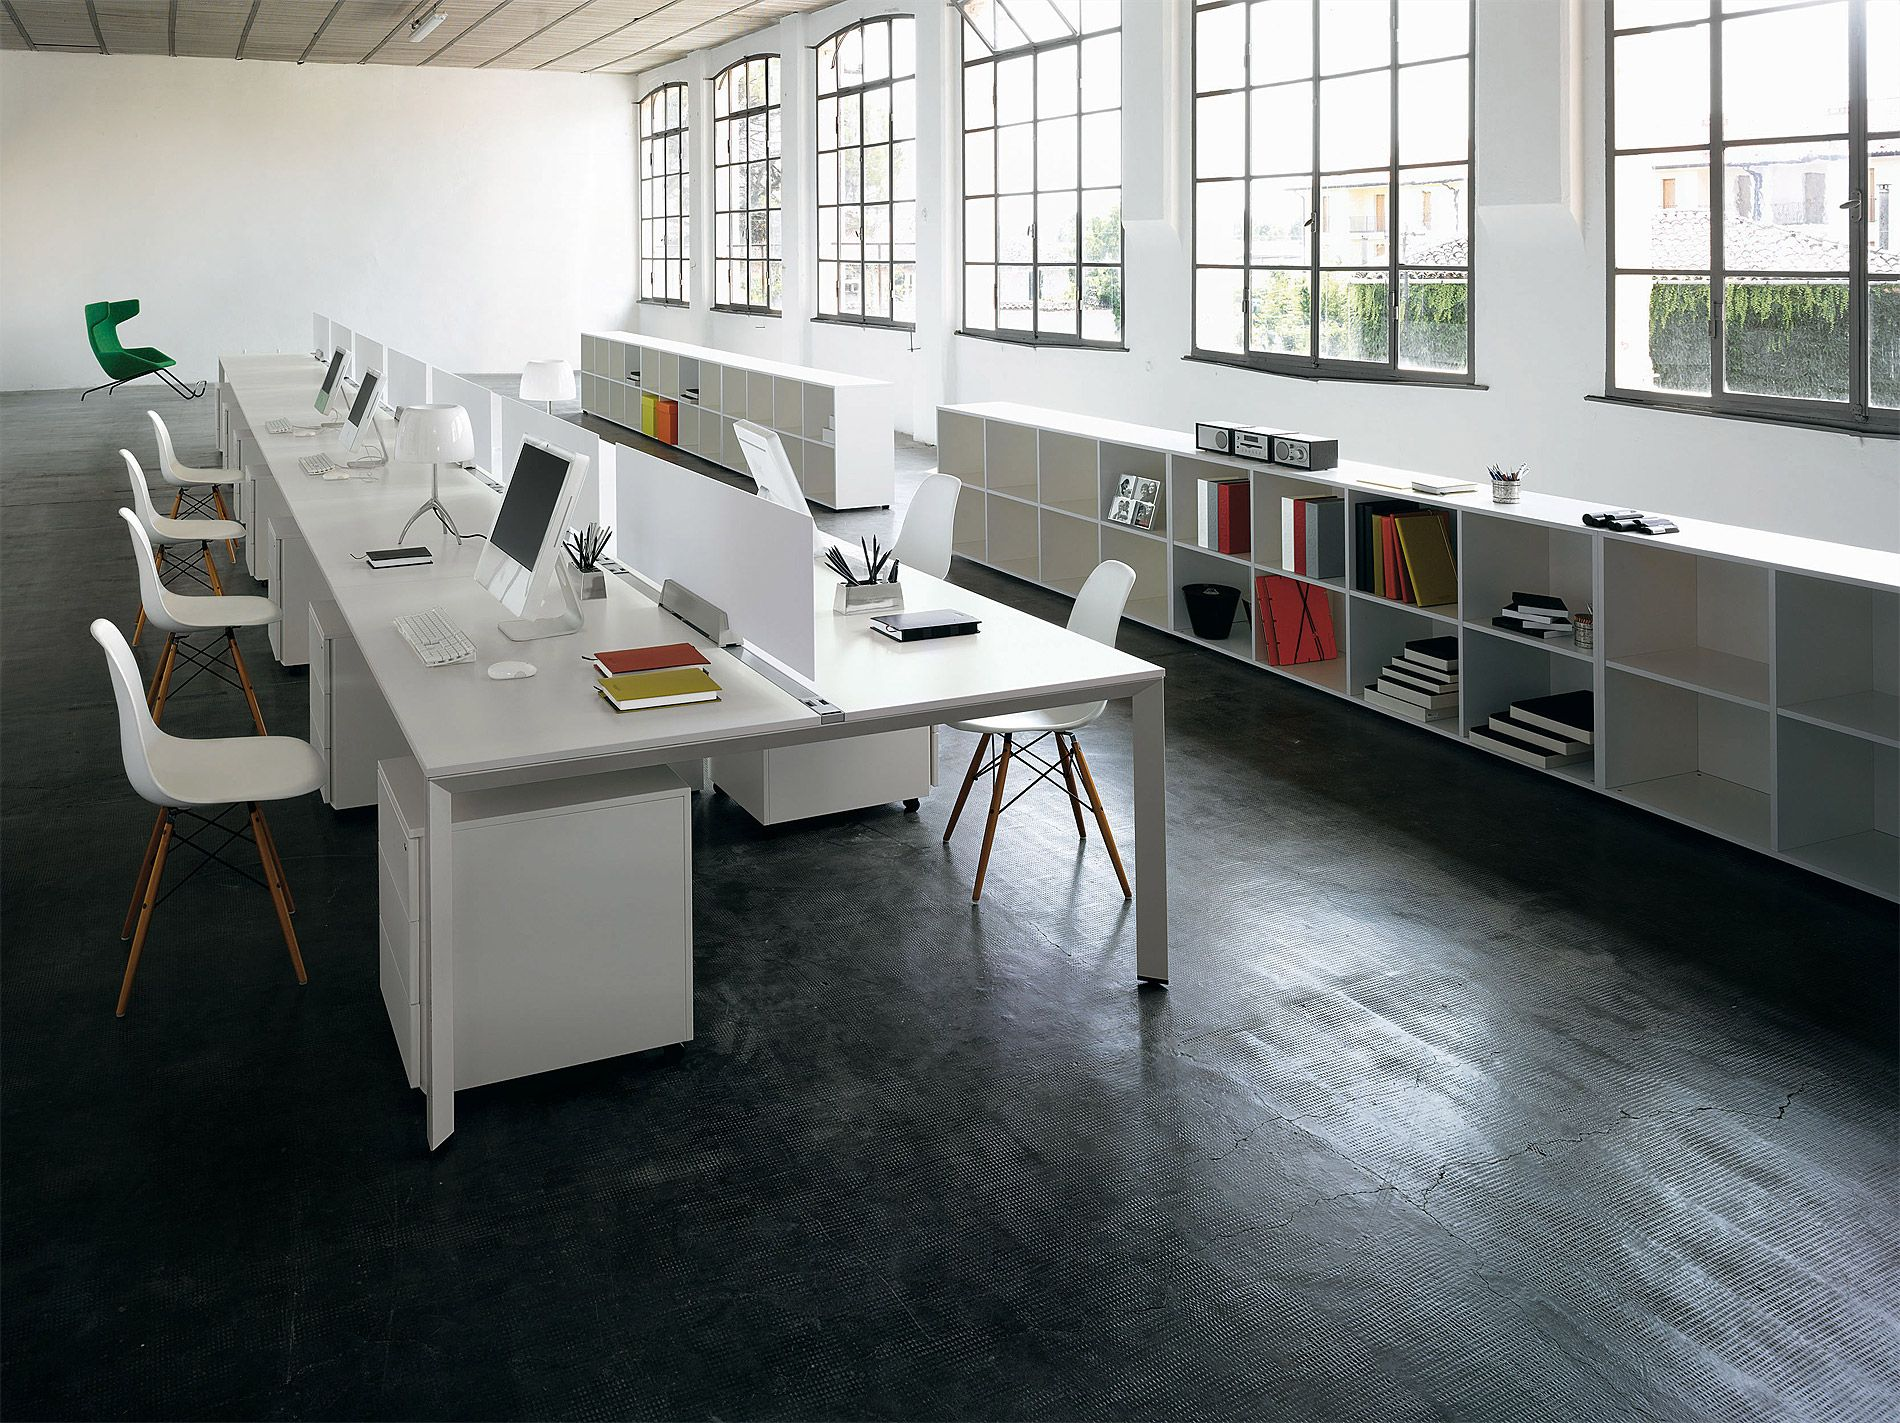 office furniture @Form. Thank you for showing light and and open ...